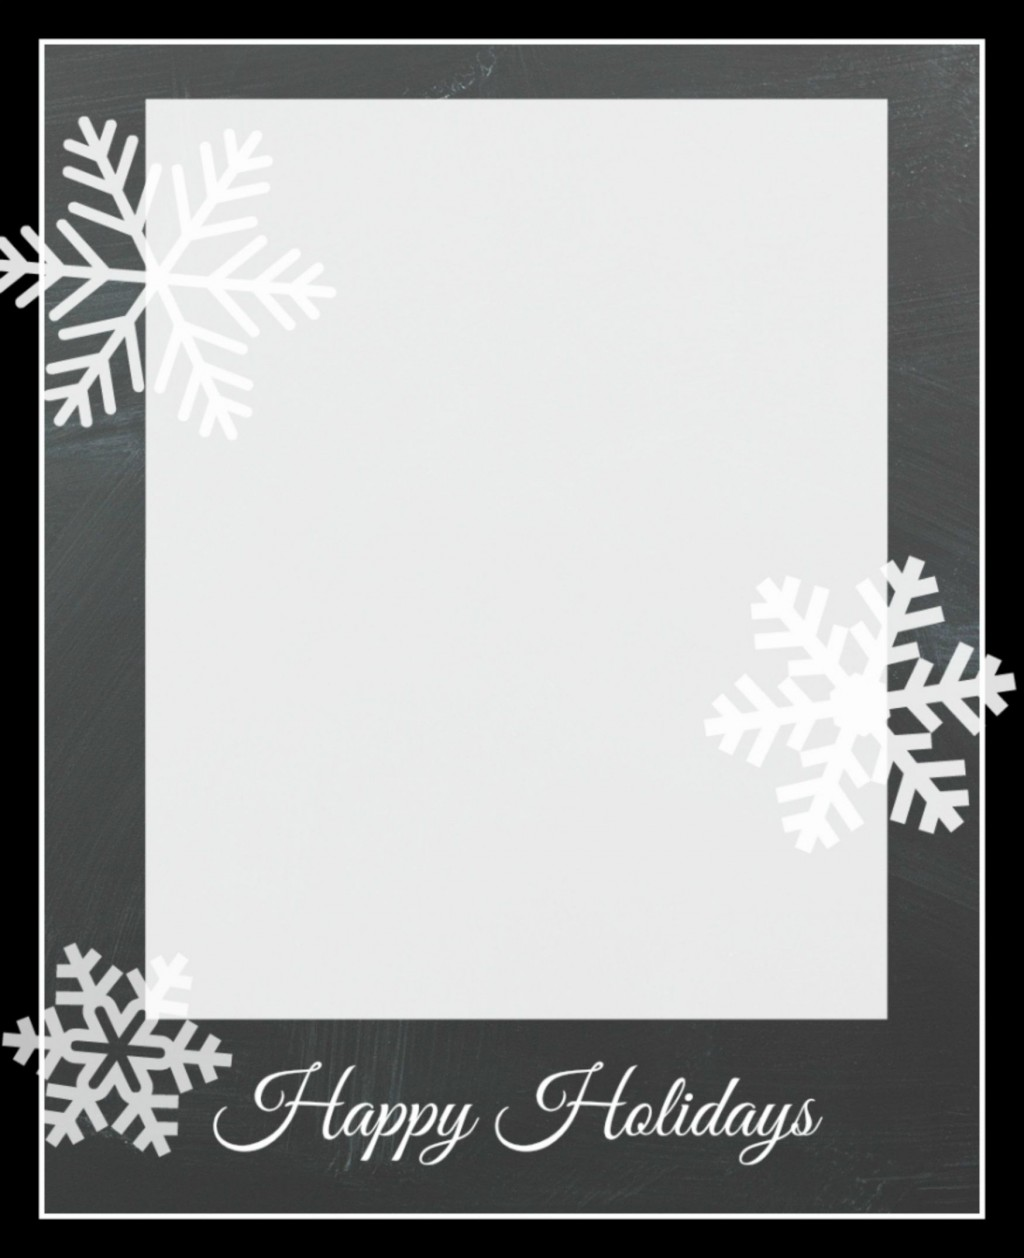 009 Frightening Free Holiday Card Template Sample  Templates Printable Photo For WordLarge